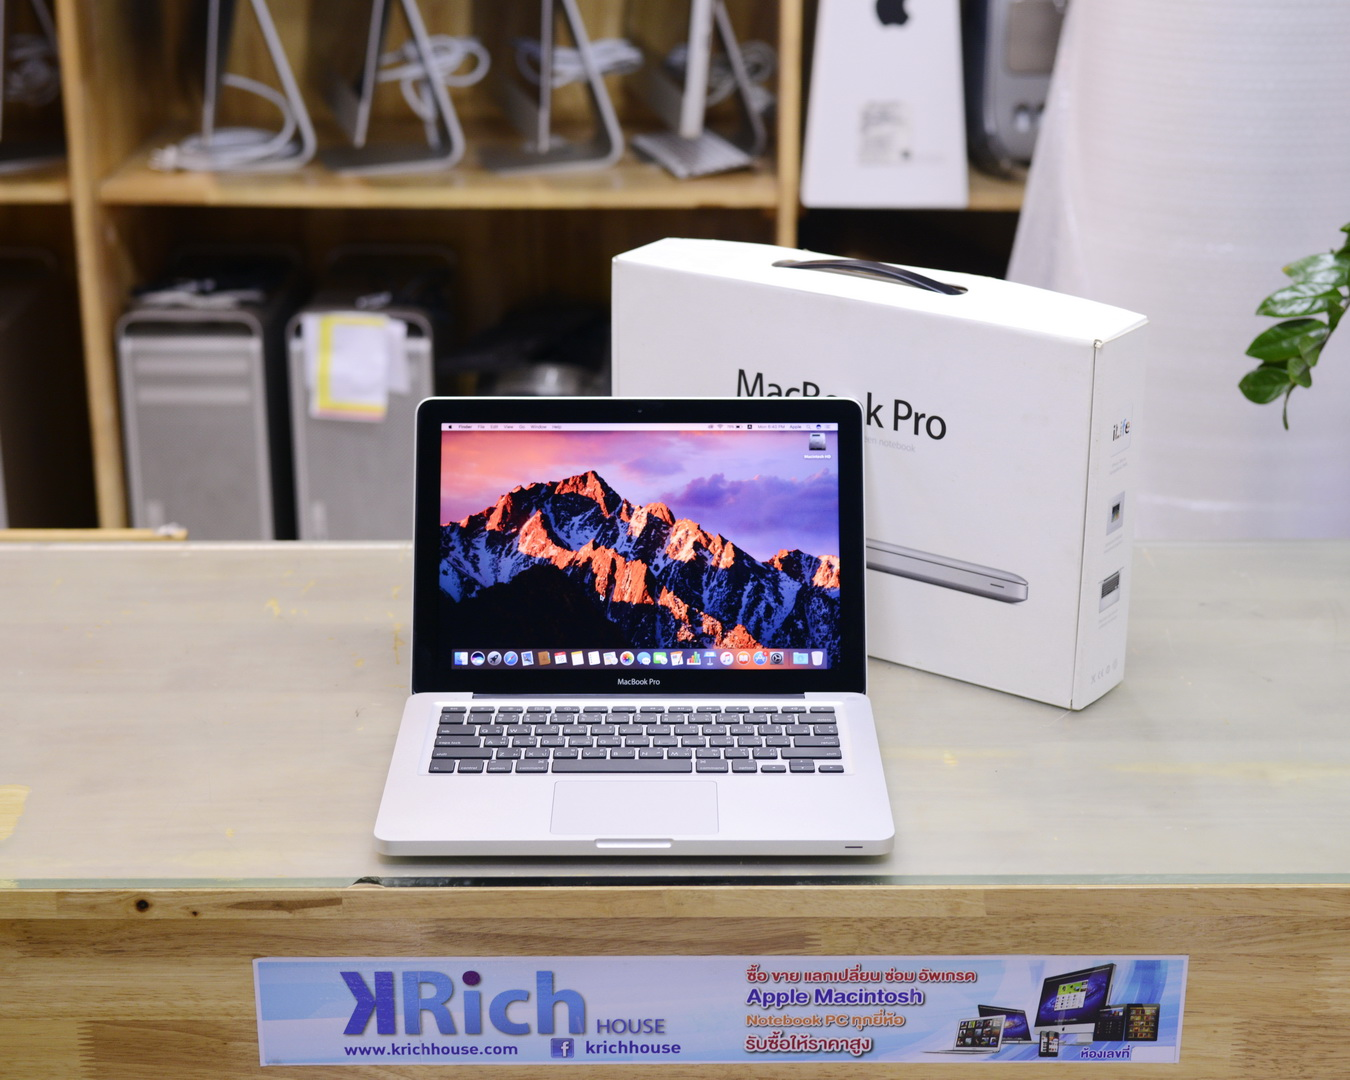 MacBook Pro (13-inch, Mid 2010) Core 2 Duo 2.4GHz RAM 4GB HDD 250GB GEFORCE 320M 256MB - Fullbox